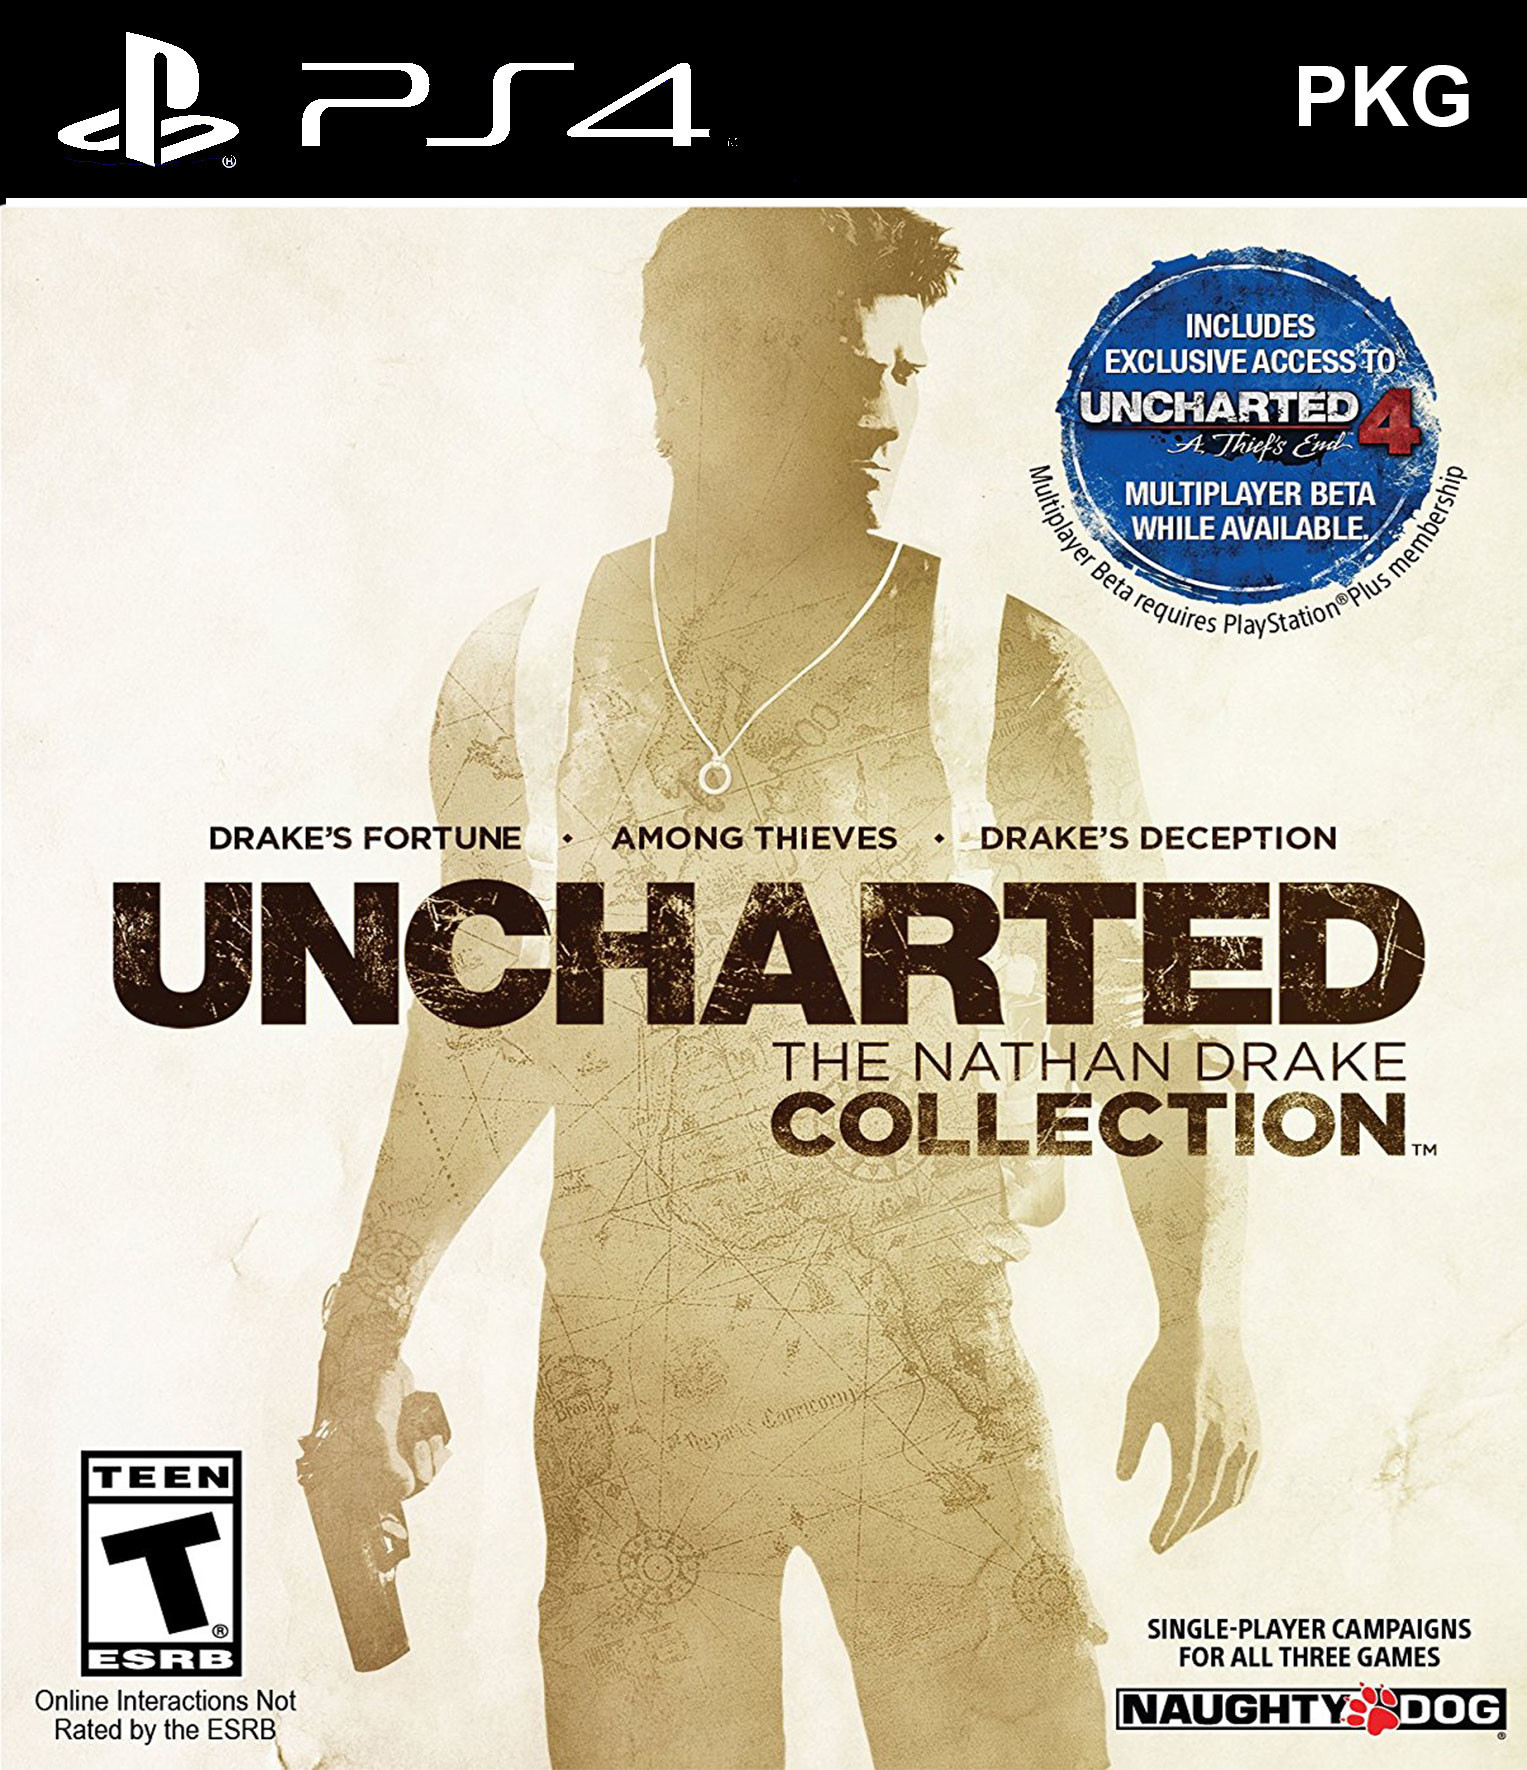 Uncharted: The Nathan Drake Collection PKG Oyun İndir ! [4.05